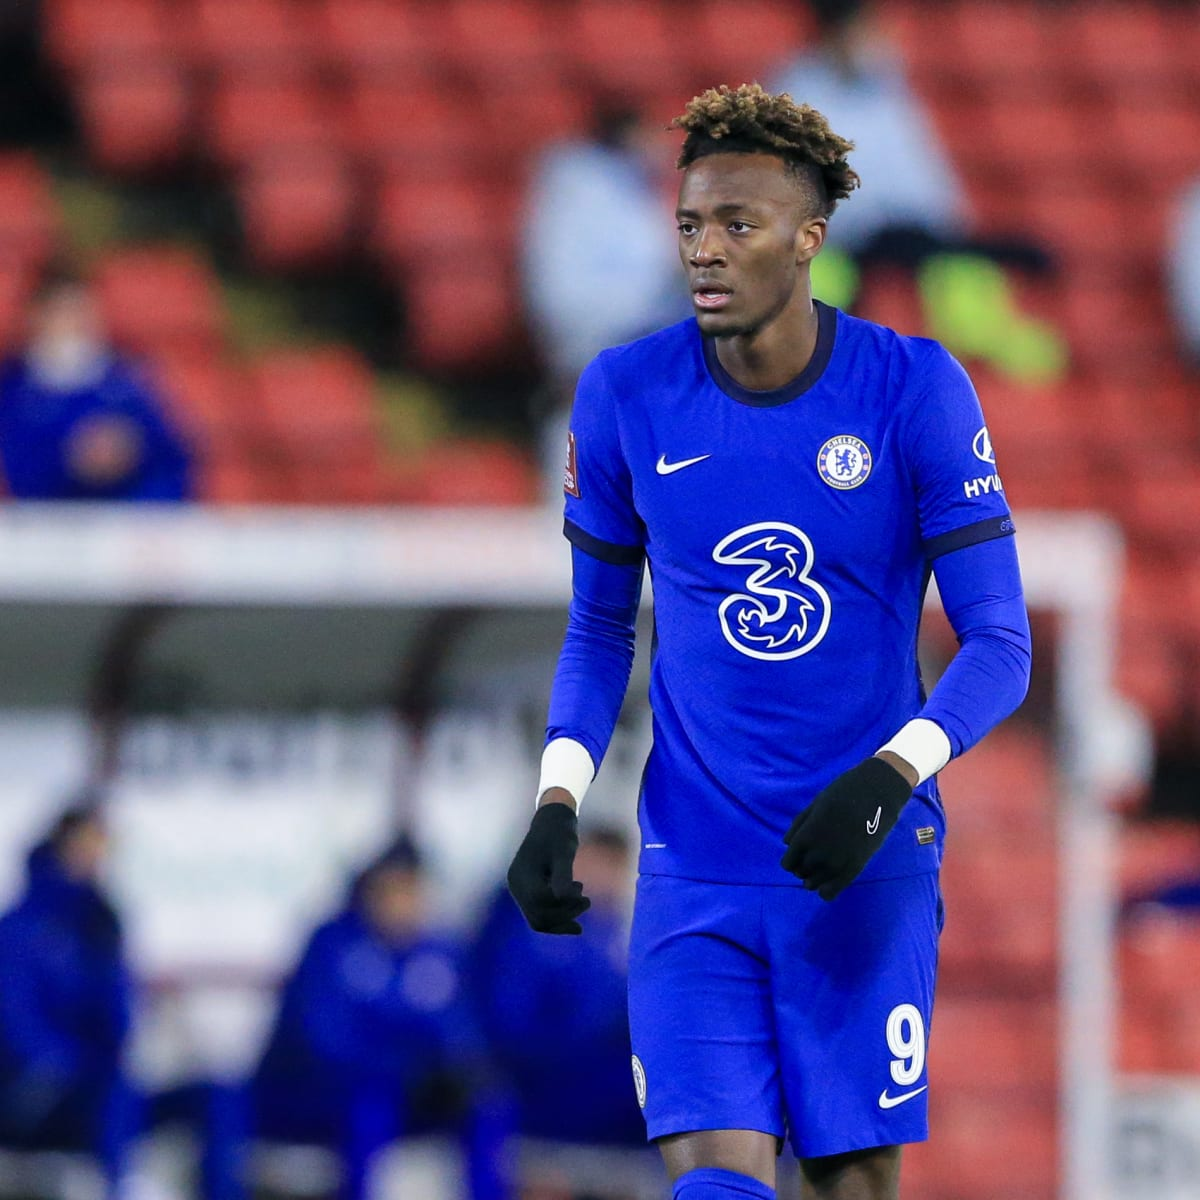 Tammy Abraham Confused By Thomas Tuchel Snub At Chelsea Sports Illustrated Chelsea Fc News Analysis And More